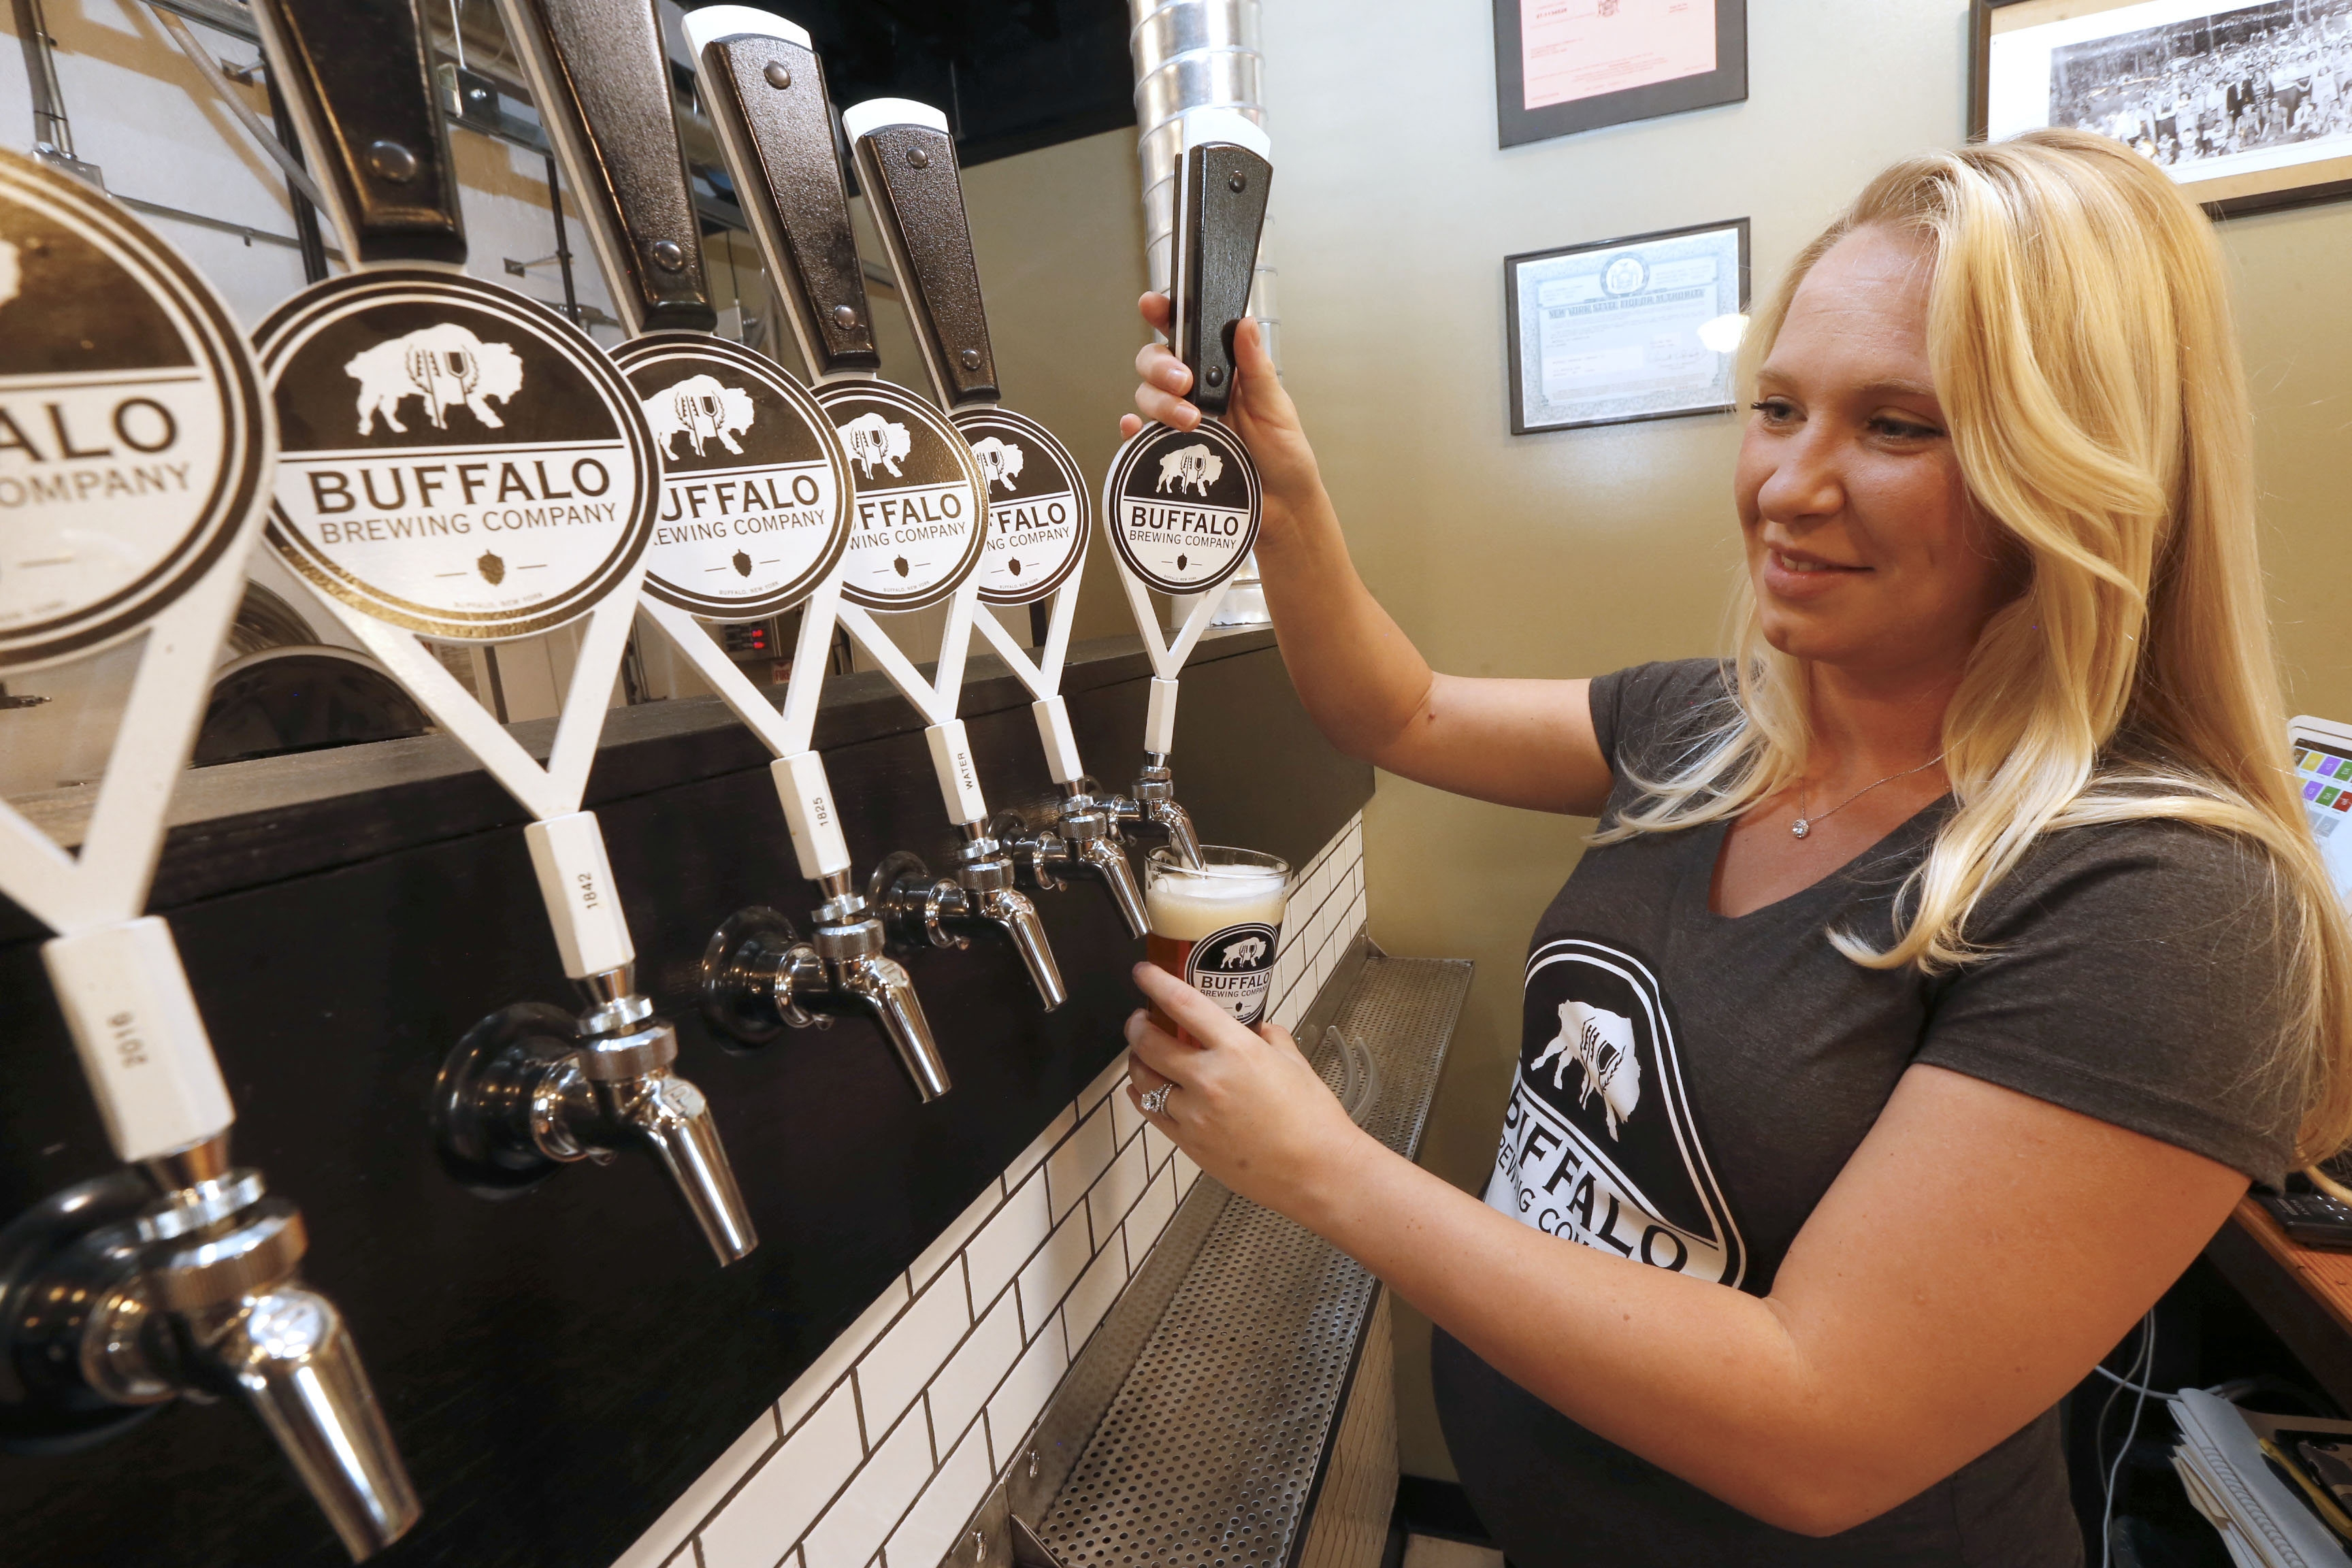 Heather Domres, co-owner of Buffalo Beer Co., 314 Myrtle Ave. in Buffalo on Tuesday, Sept. 13, 2016.  (Robert Kirkham/Buffalo News)